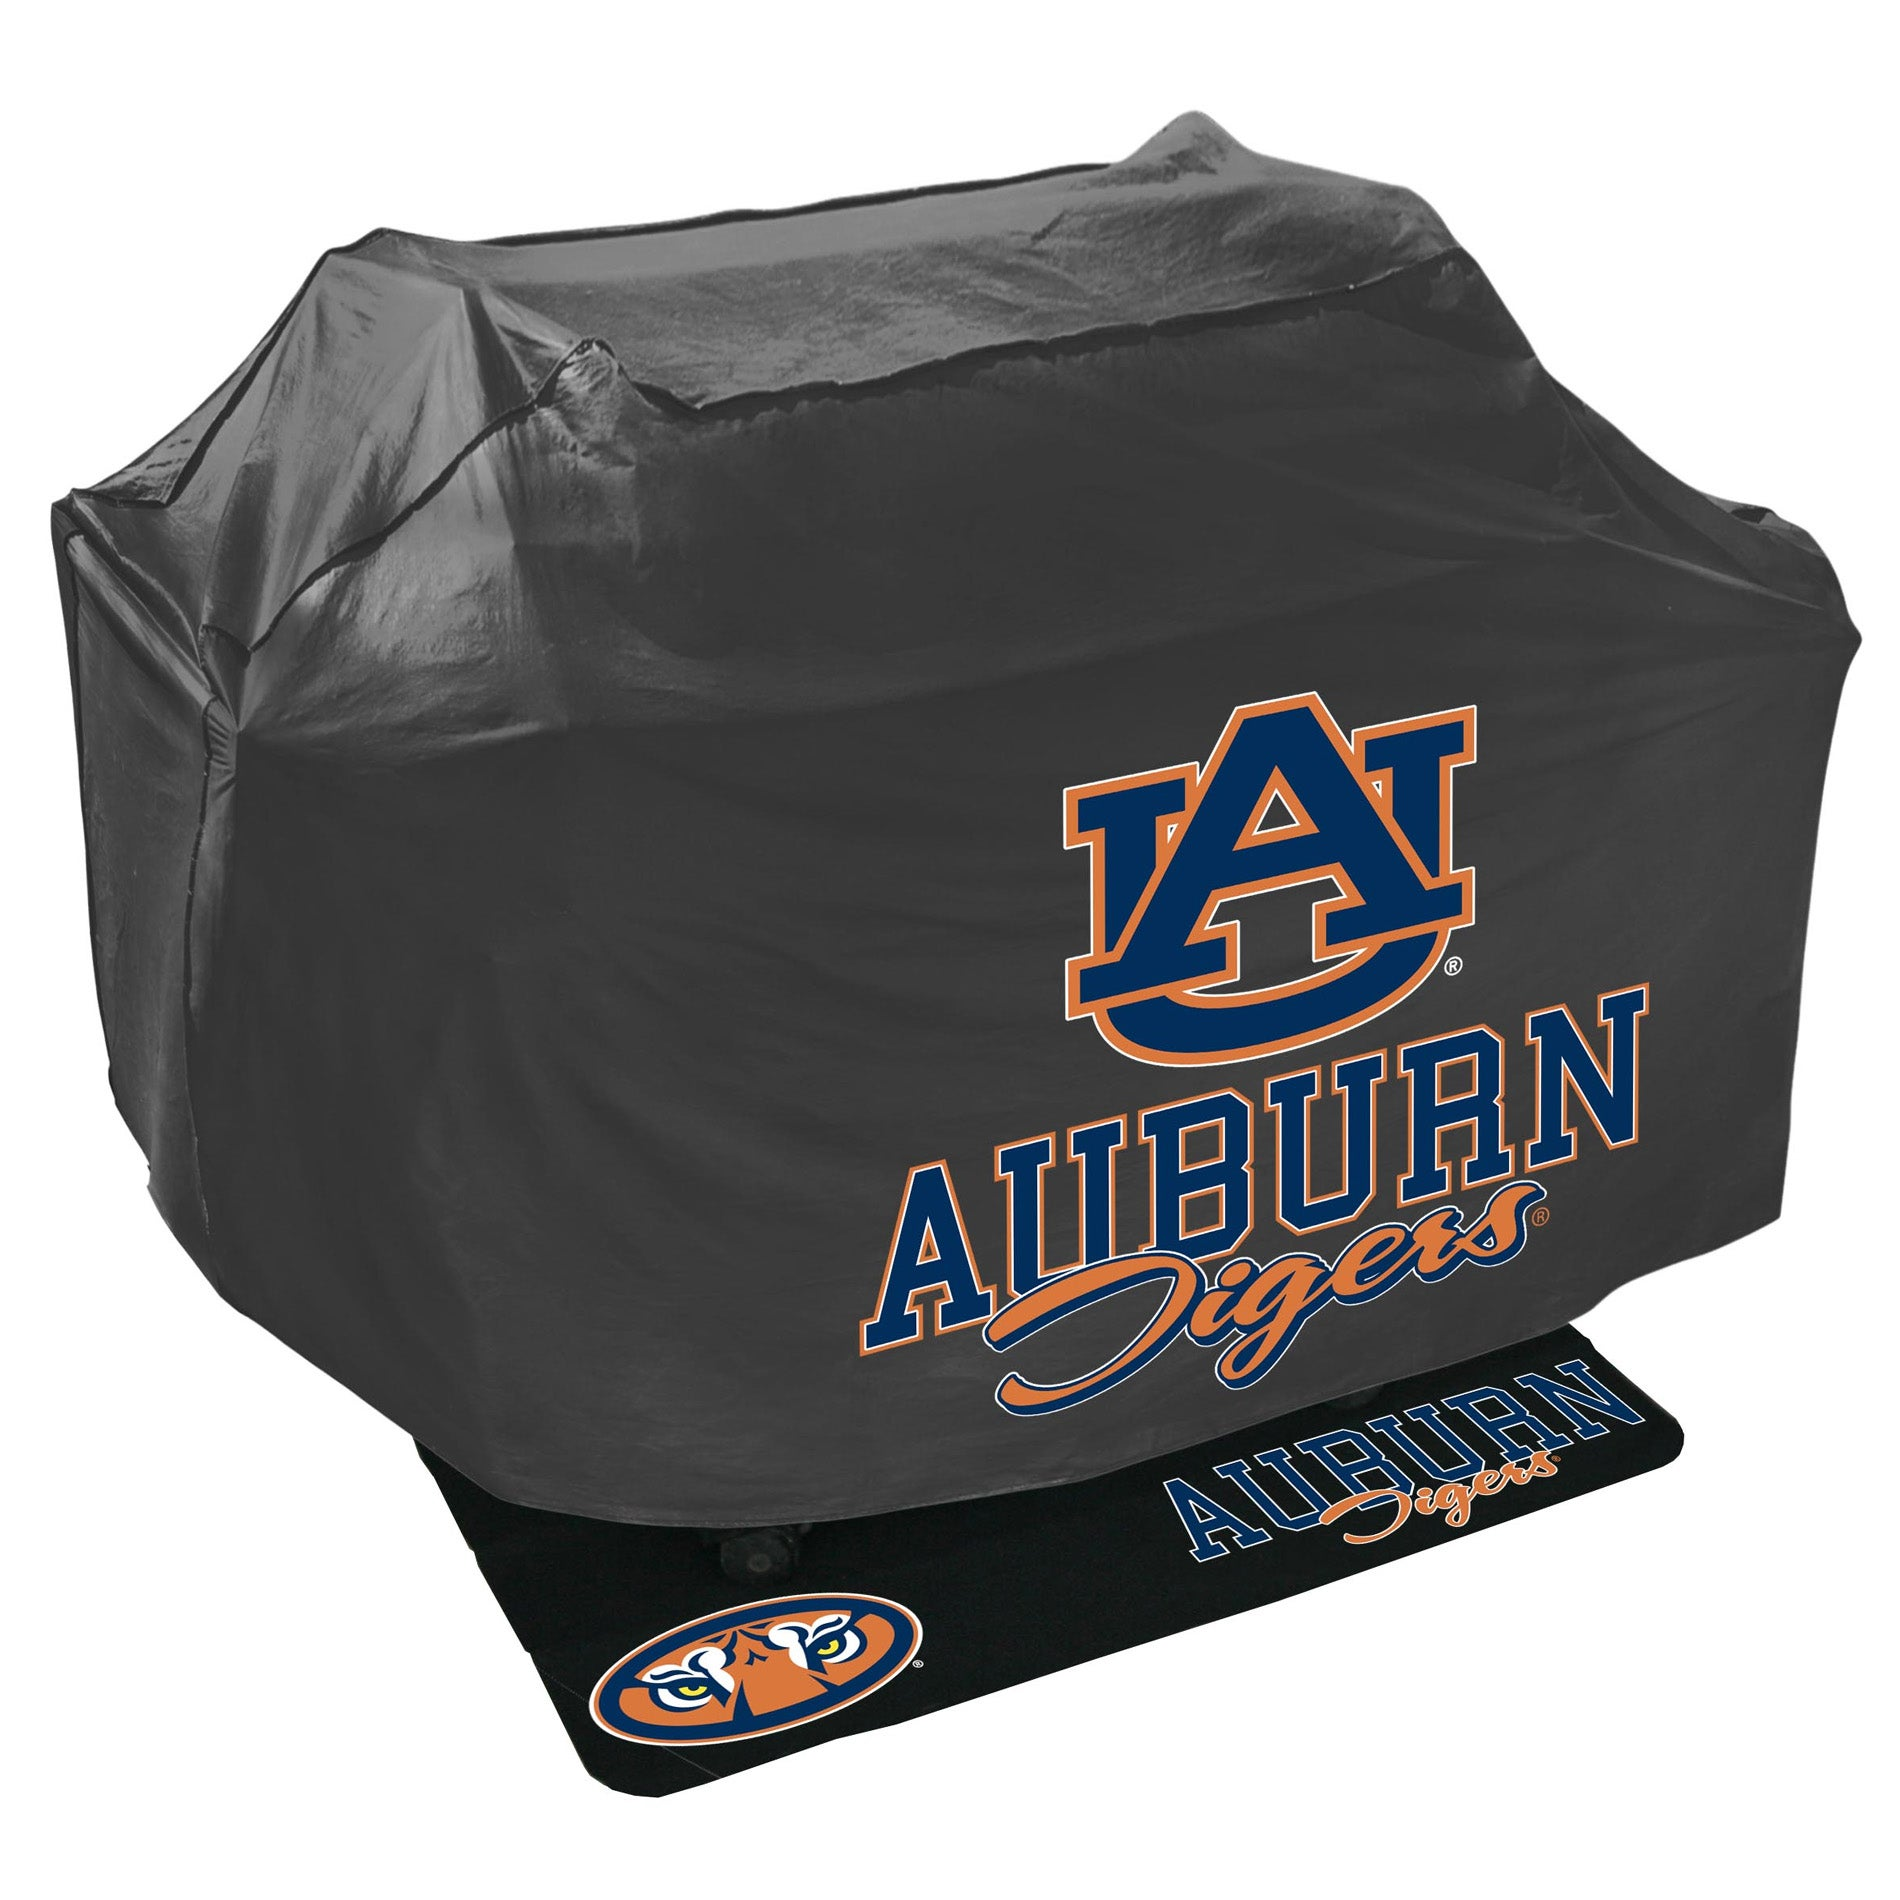 Auburn Tigers Grill Cover and Mat Set